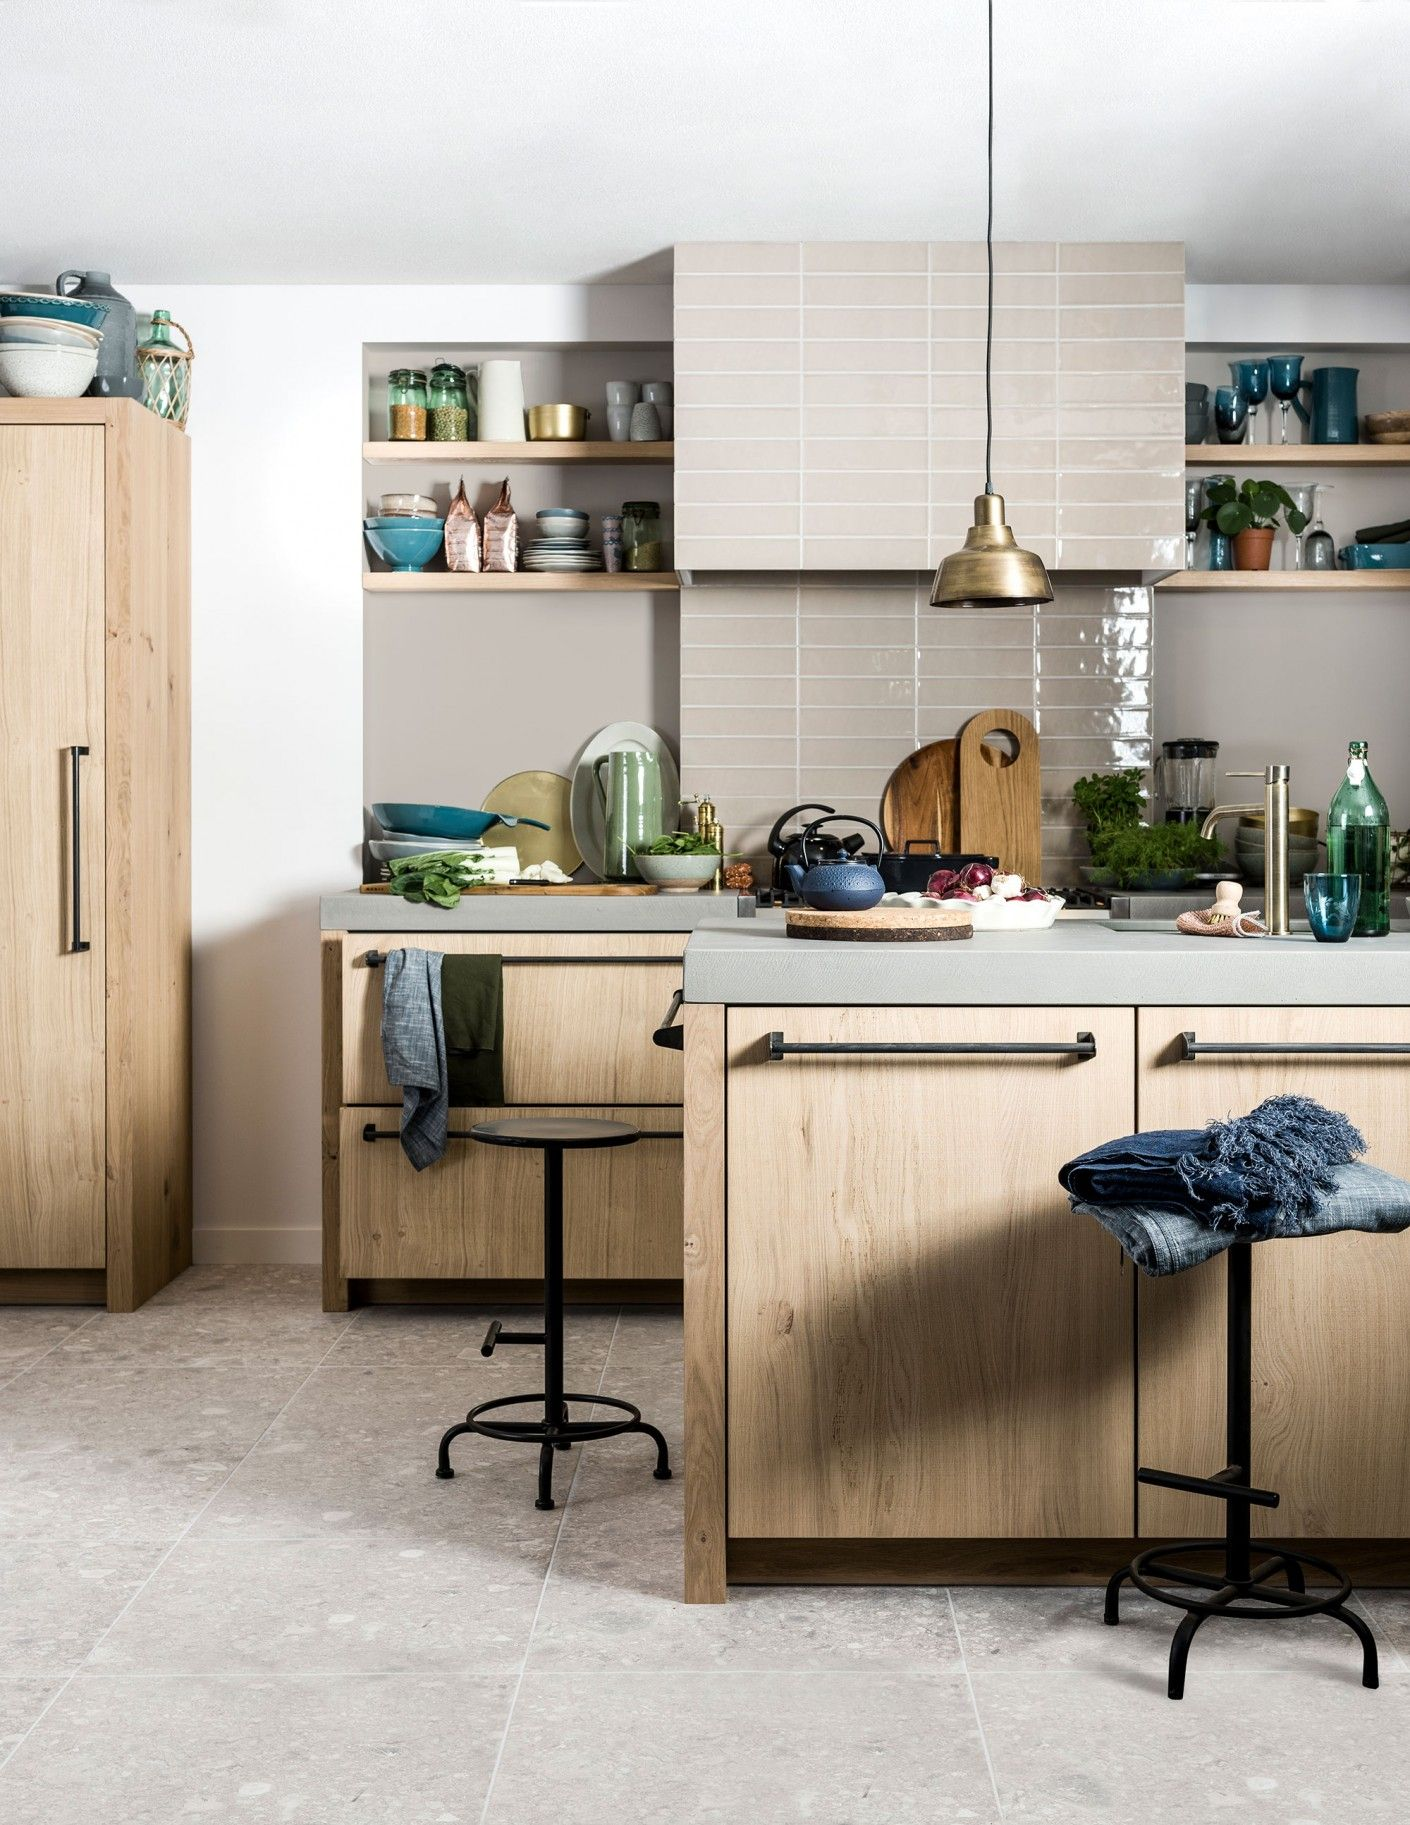 Shop deze stijl: keuken in natuurtinten | Shop the look: kitchen ...